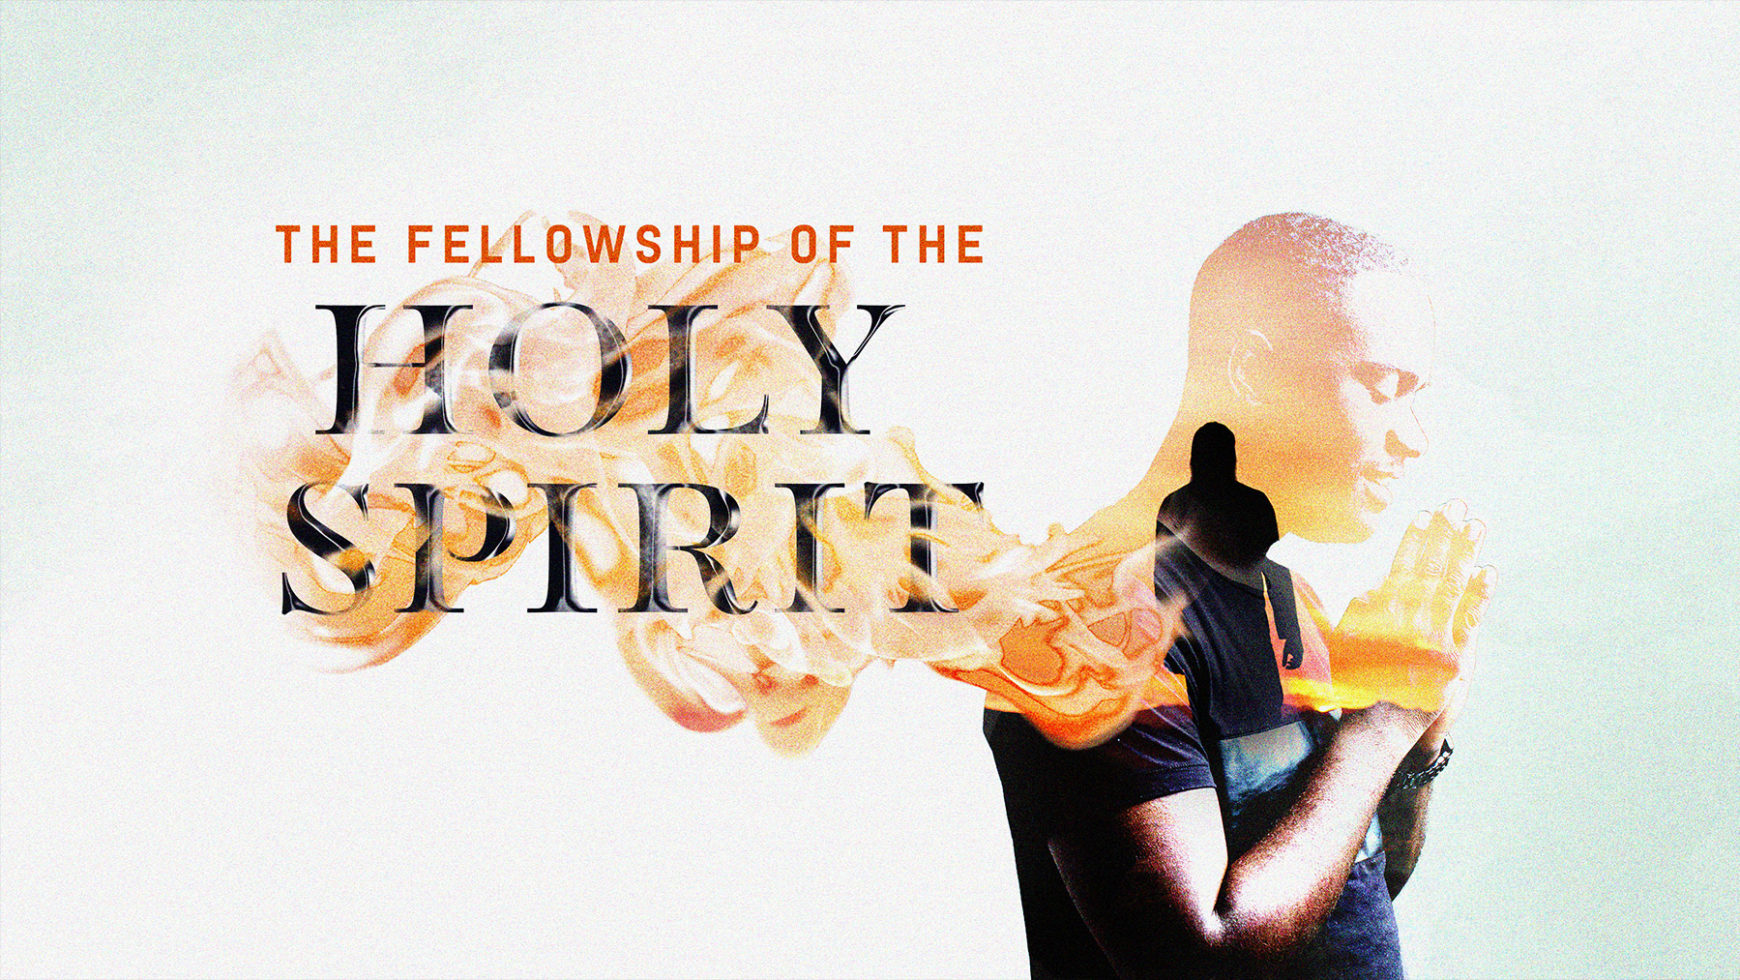 Intimate fellowship with the Holy Spirit